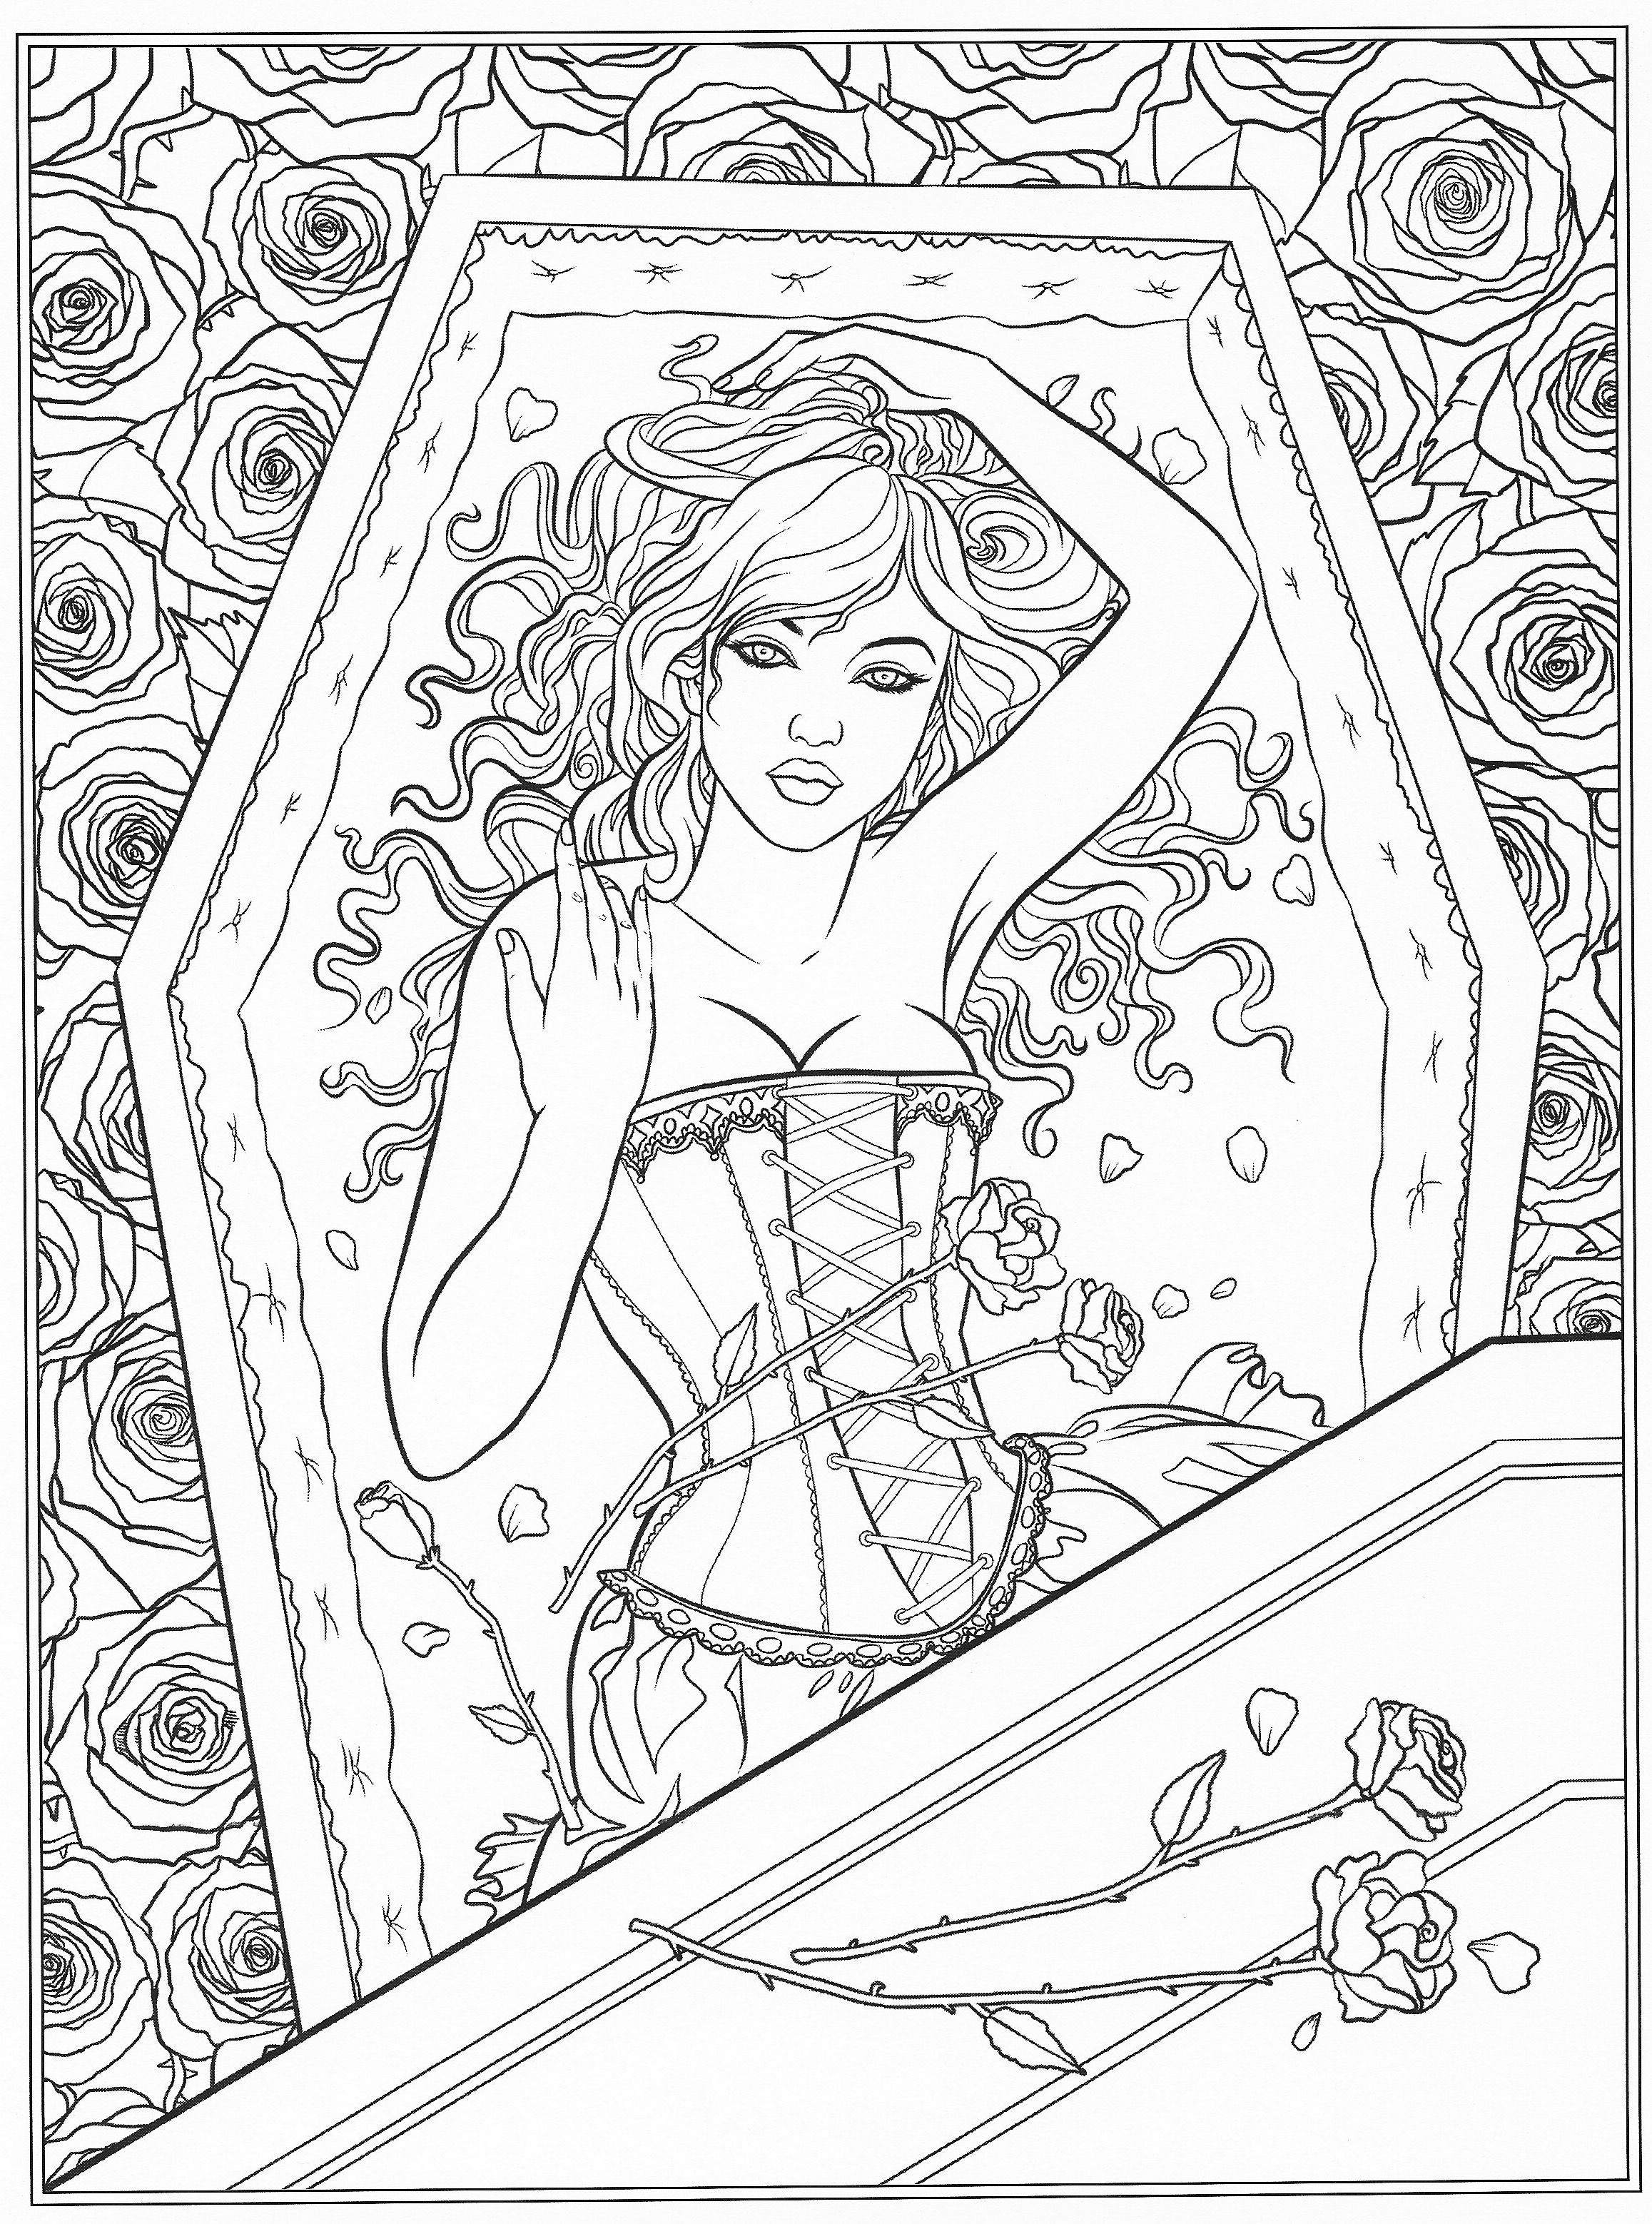 Pin By Niina Rinta Harri On Varitystehtavia In 2020 Detailed Coloring Pages Fairy Coloring Pages Chibi Coloring Pages